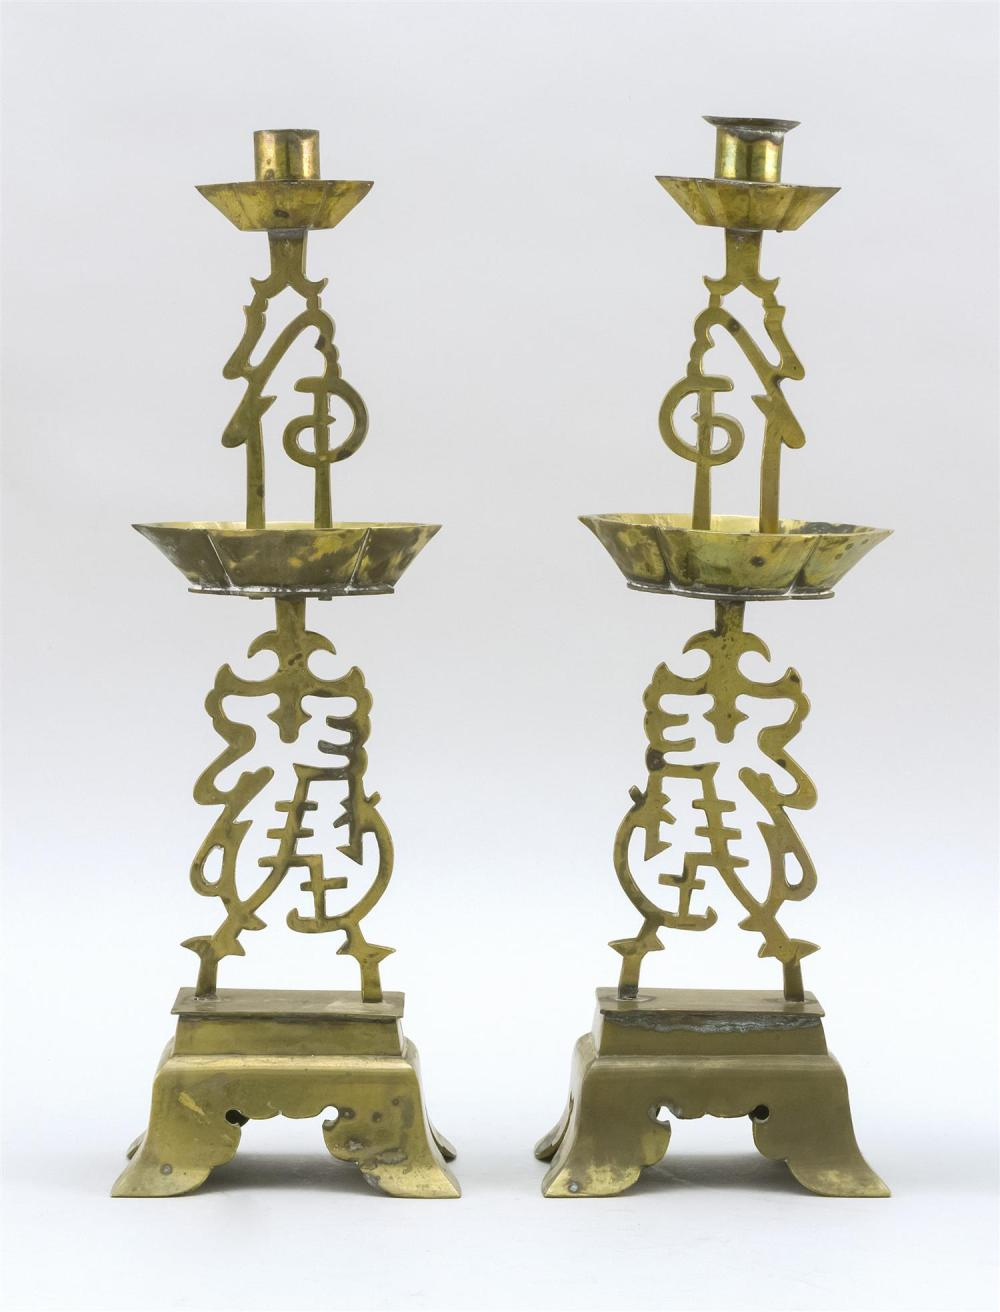 "PAIR OF CHINESE BRASS CANDLESTICKS Openwork calligraphy stems with lozenge-form drip cups. Footed bases. Heights 16""."